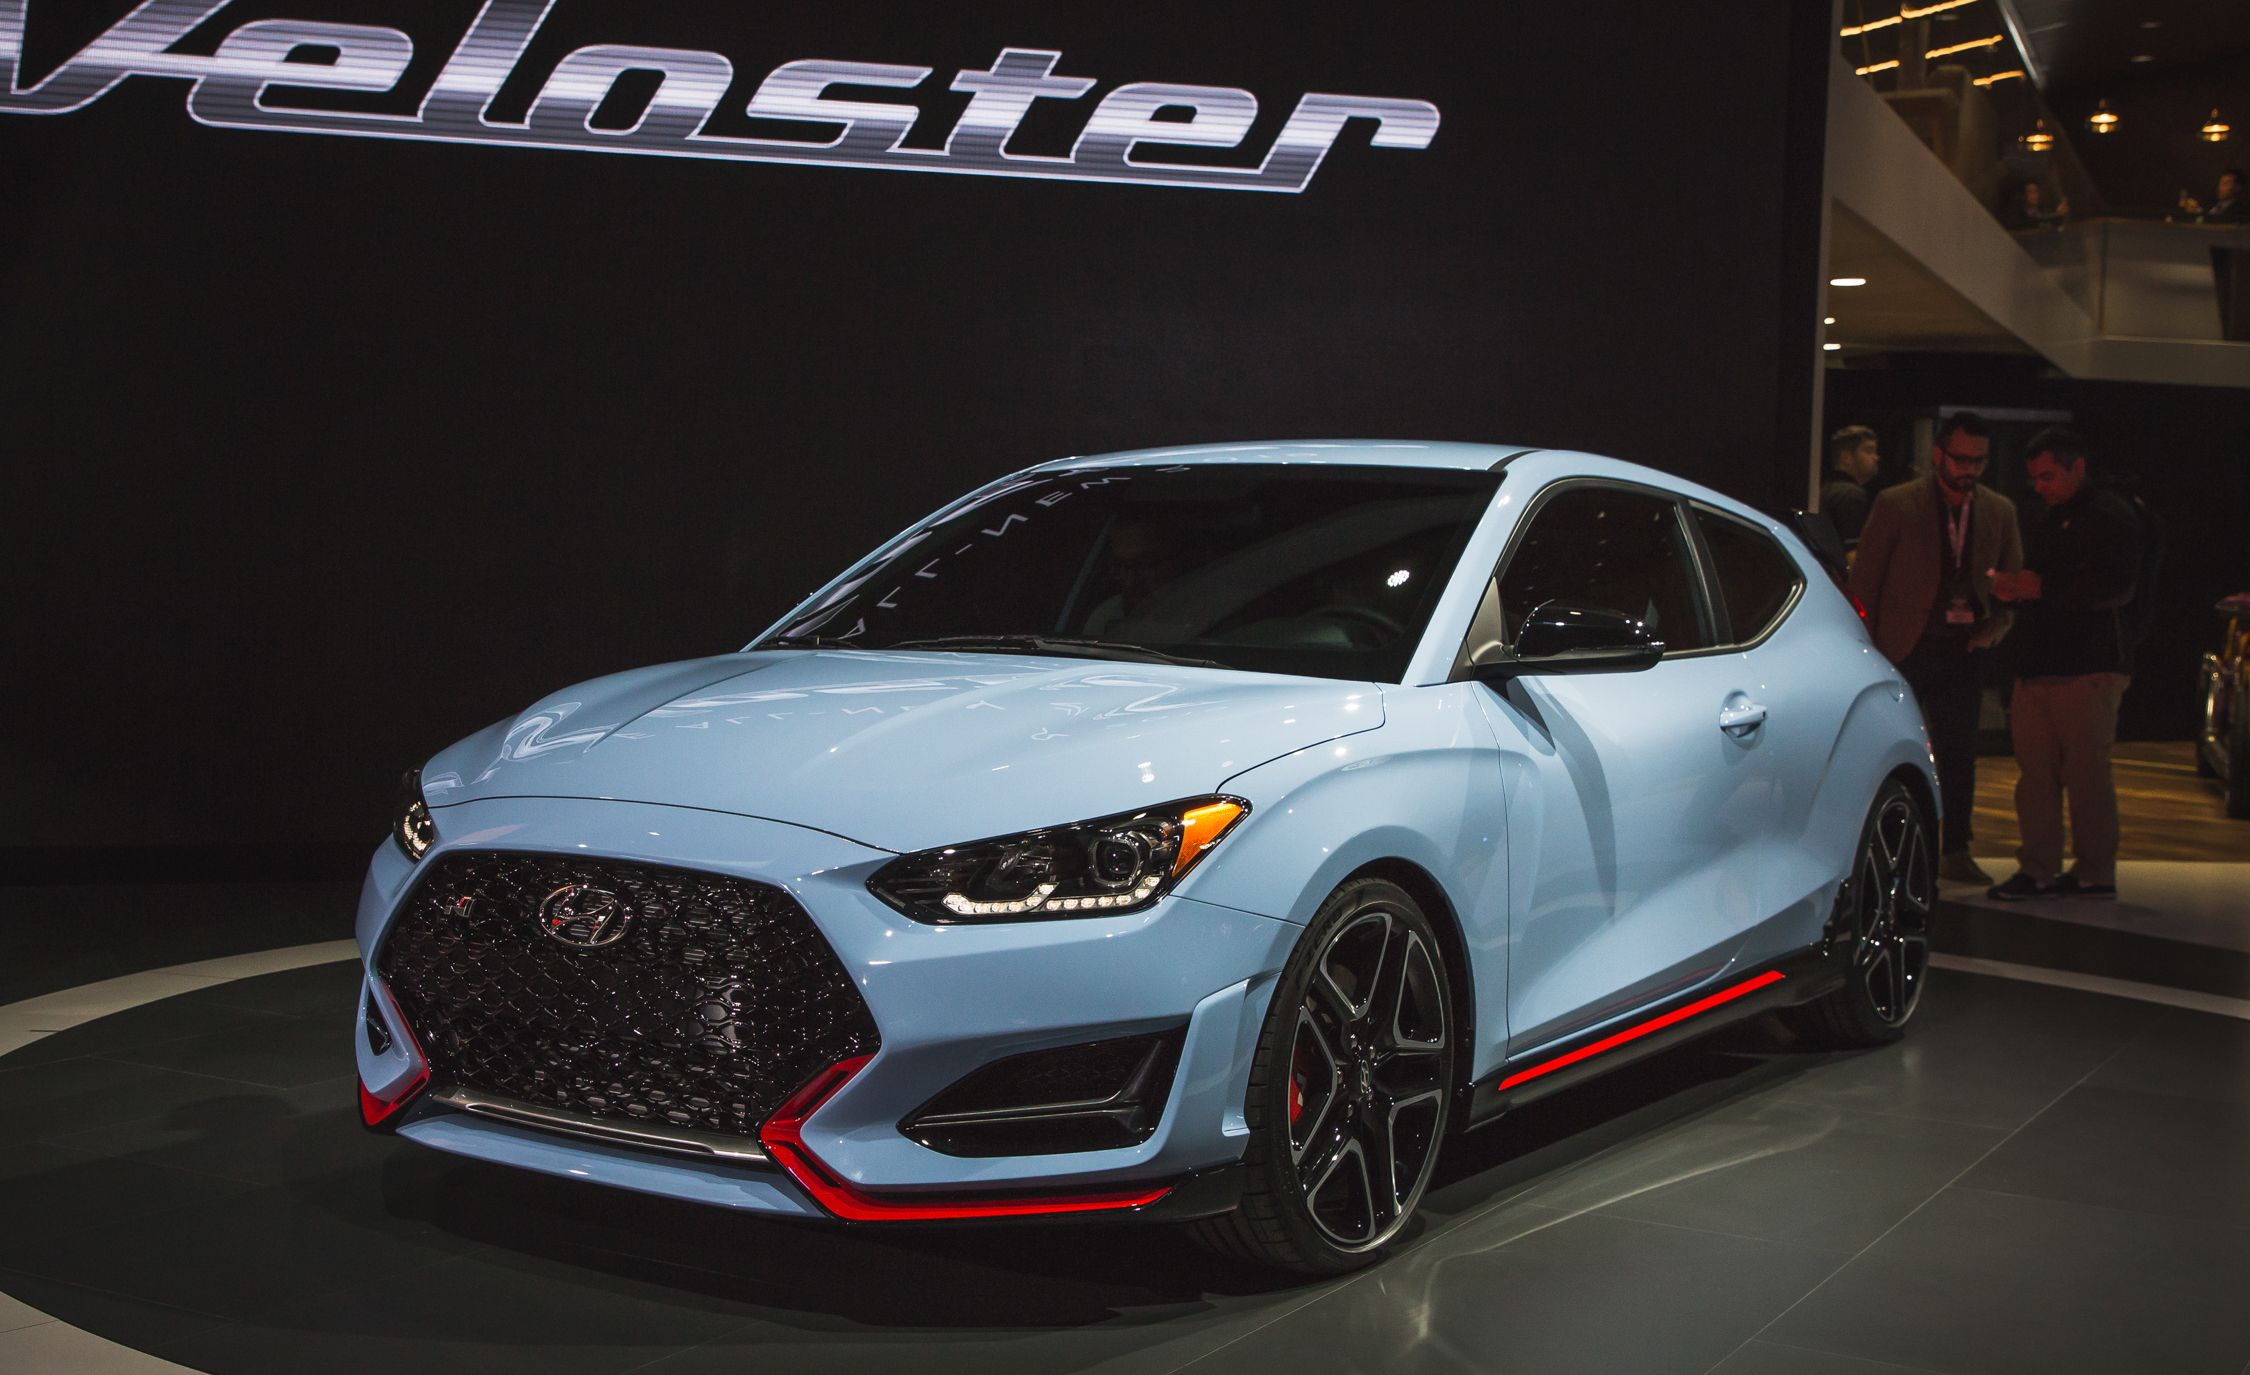 Toyota Build And Price >> 2019 Hyundai Veloster N Pictures | Photo Gallery | Car and ...